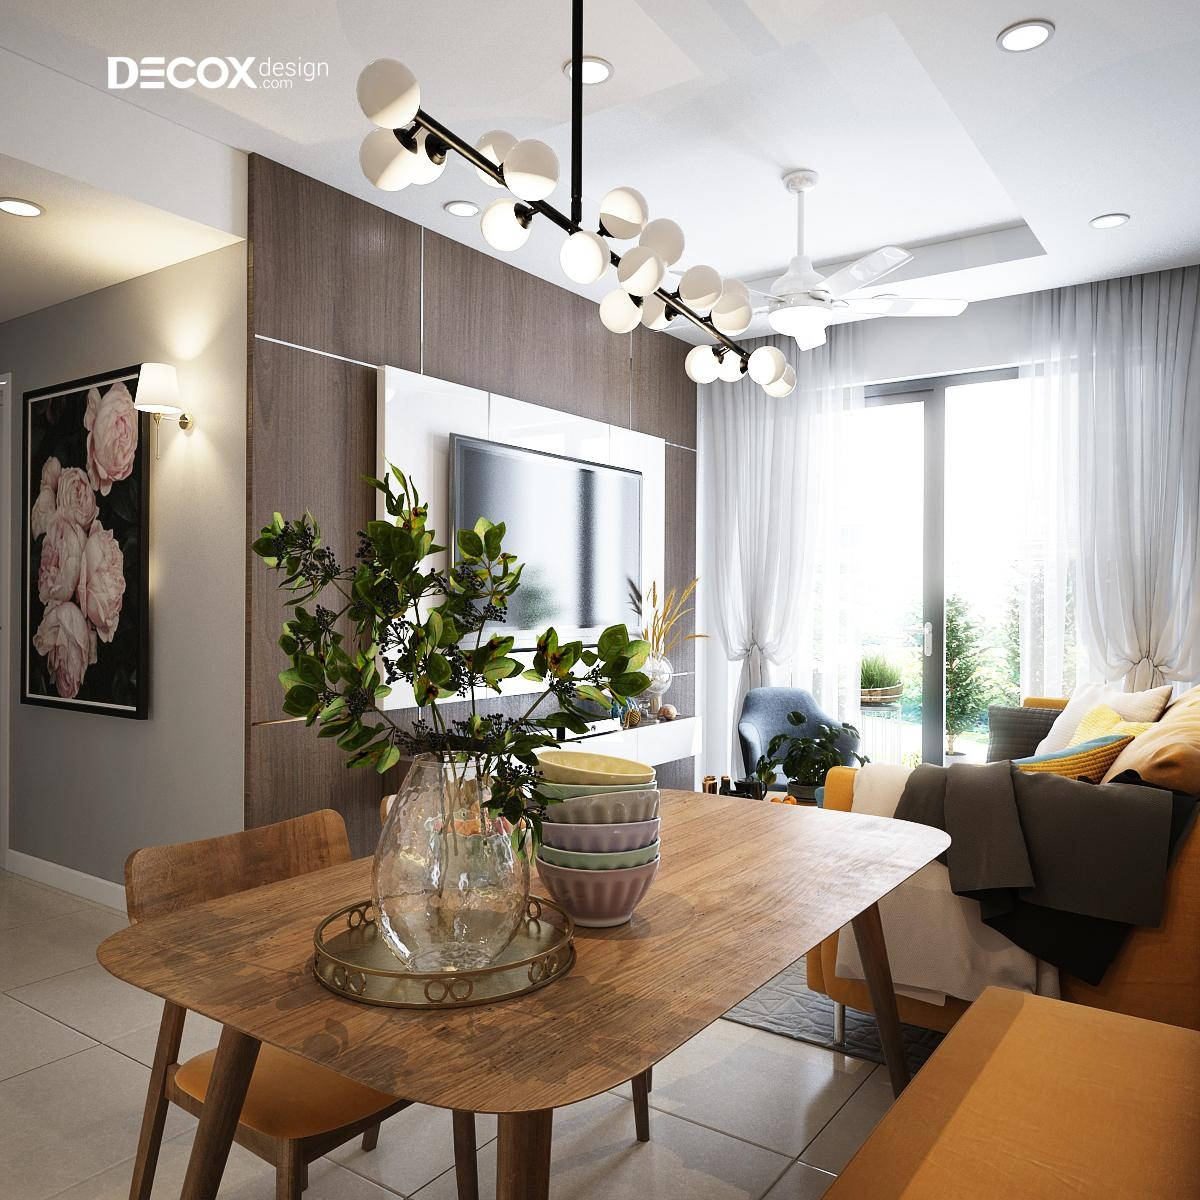 thiet-ke-noi-that-botanica-premier-de190085-70m2-de-phong-bep-04-decox-design